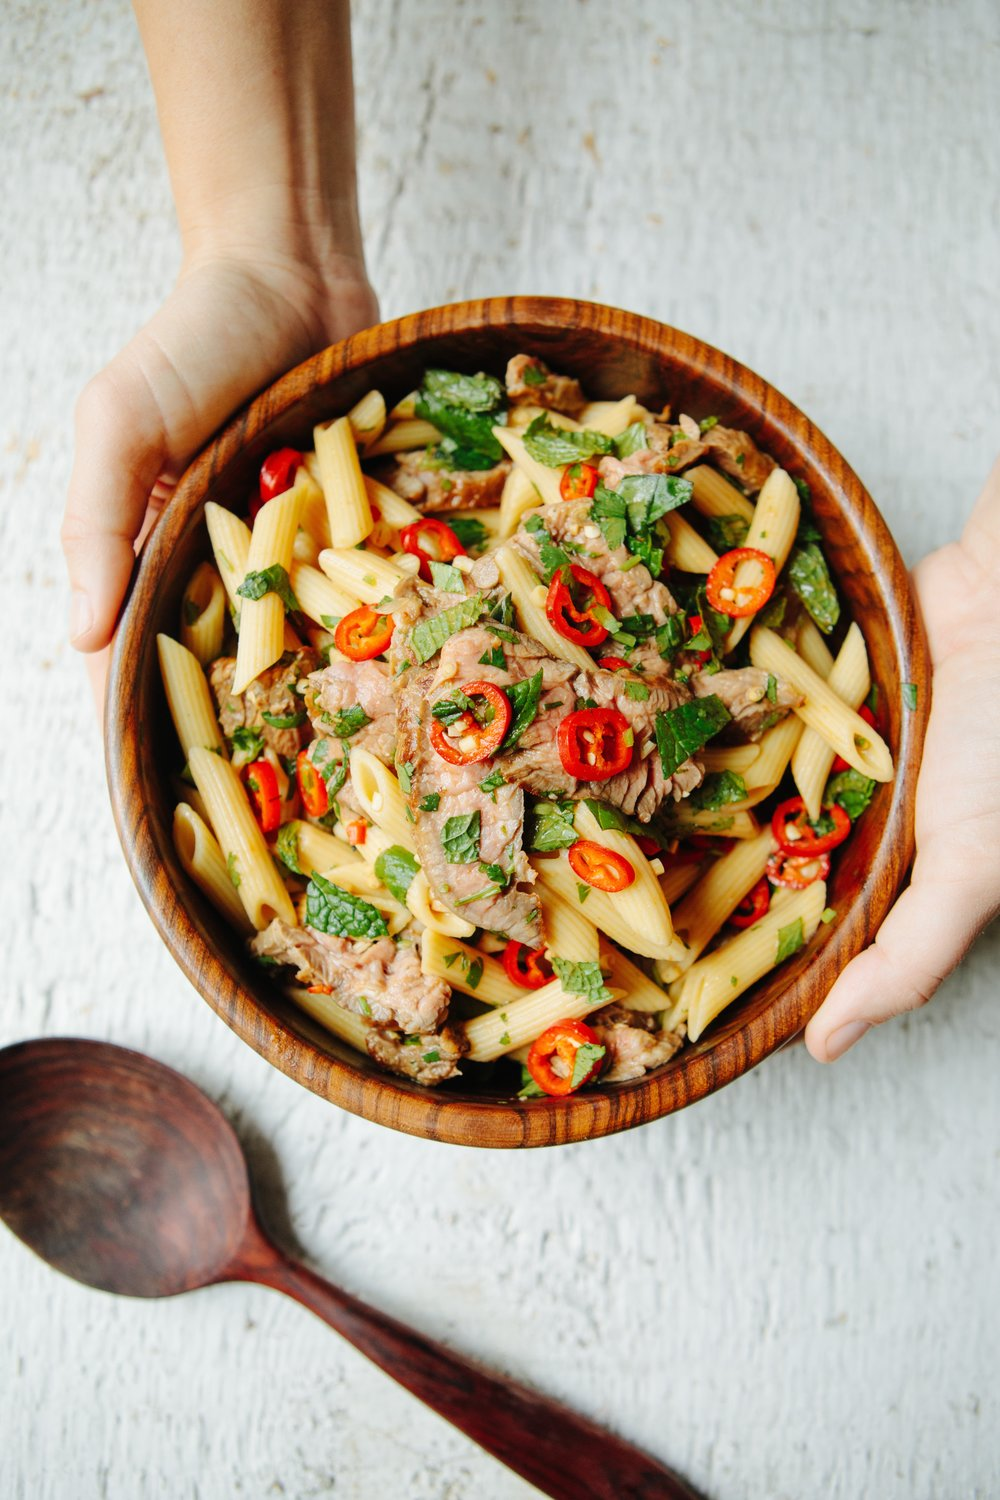 THE ART OF THE MASHUP_Isaan Steak Pasta Salad_BRIAN SAMUELS PHOTOGRAPHY-6682.jpg